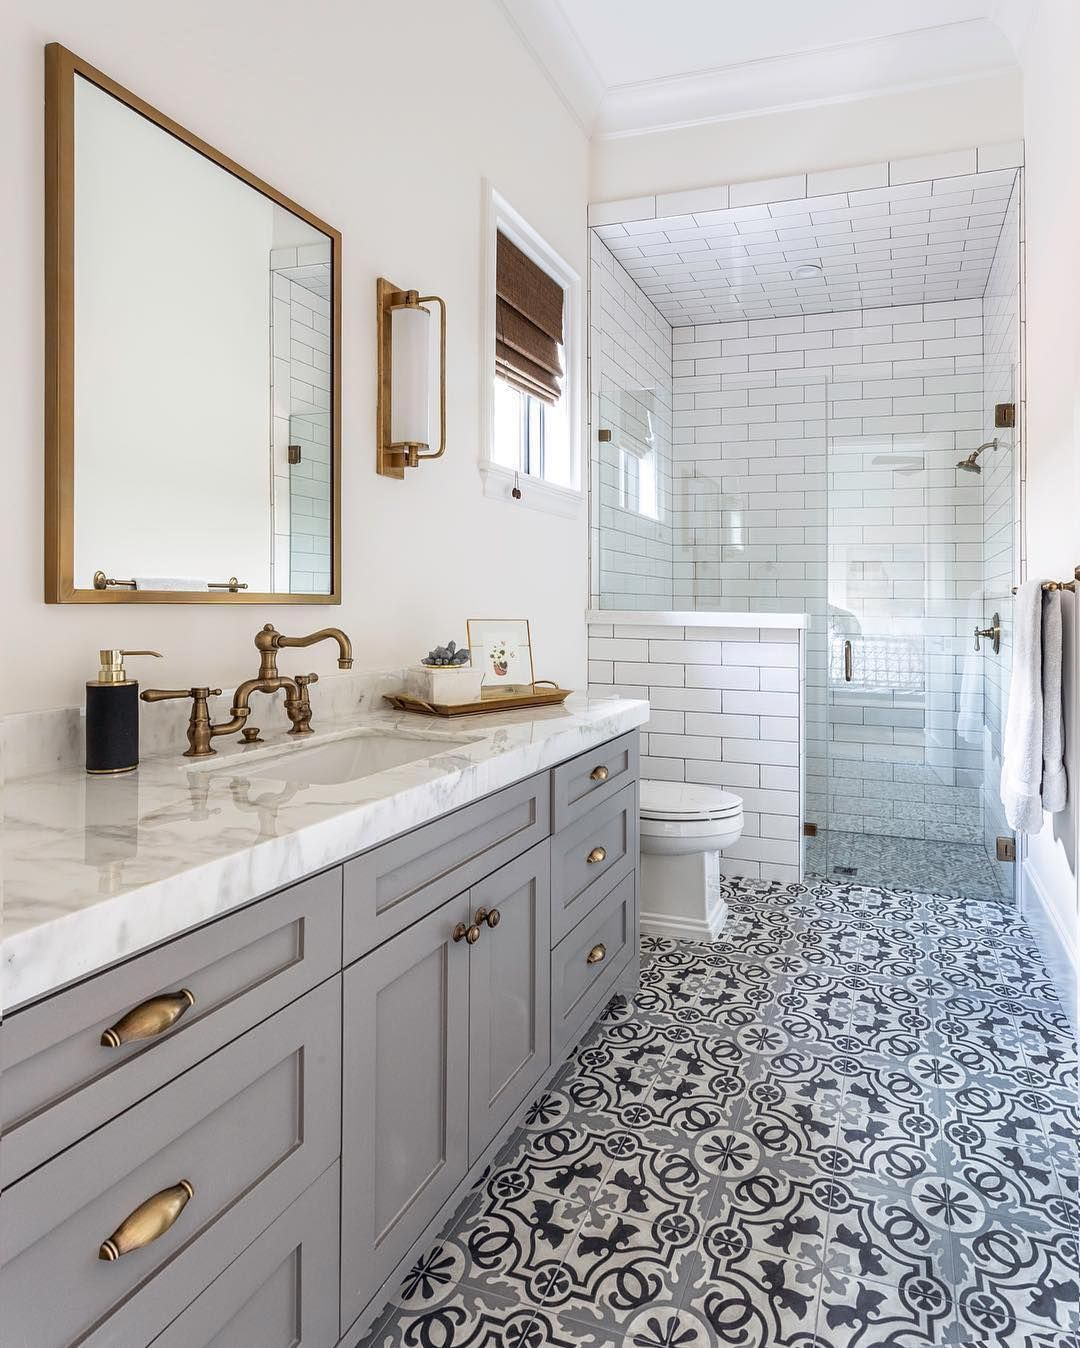 The Patterned Floor In This Bathroom Perfectly Compliments The Marble Countertop And White Subway Tiles Th Bathroom Trends Small Bathroom Bathroom Inspiration